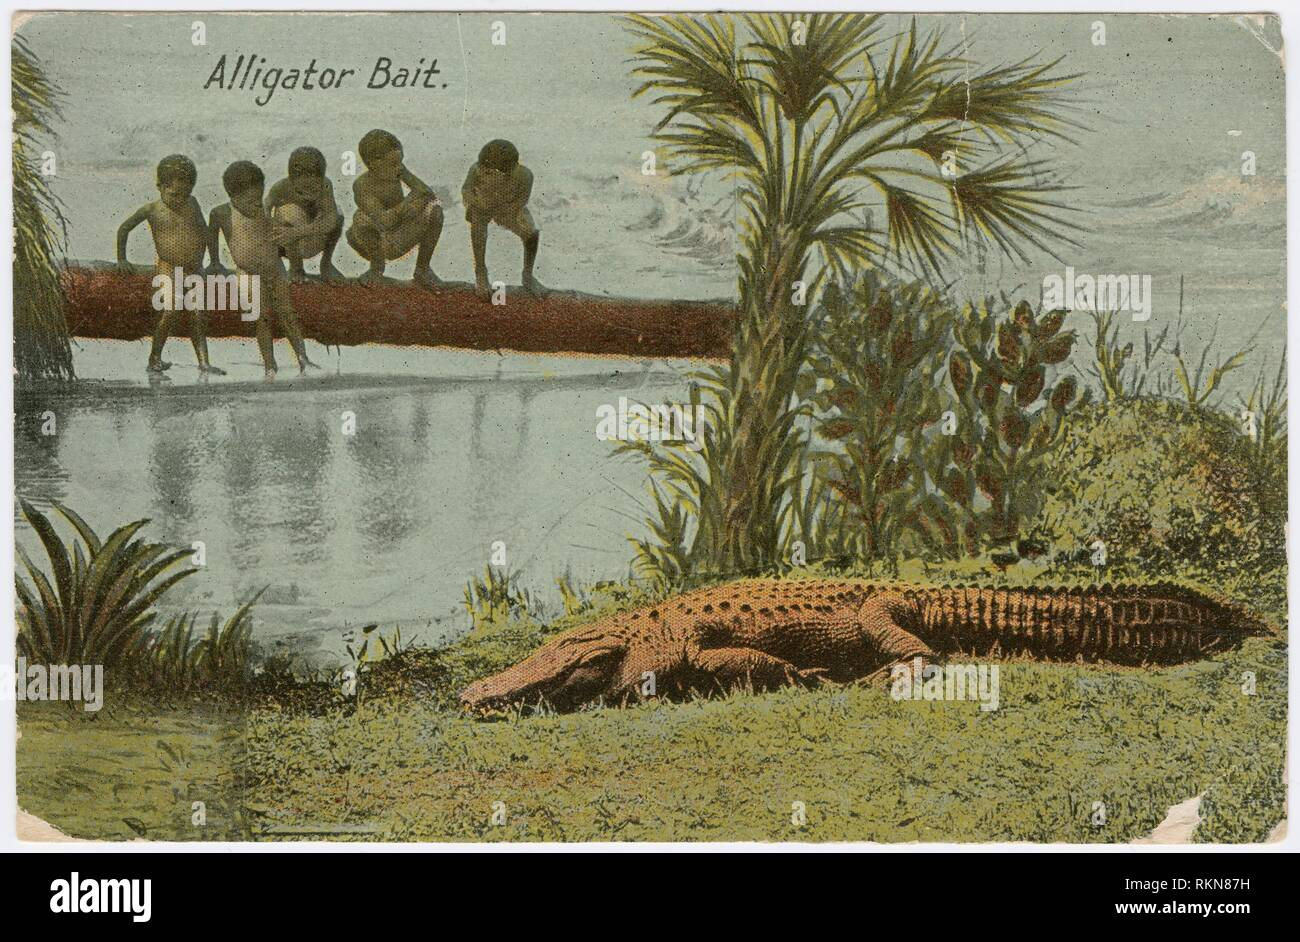 '''''Alligator Bait'' - postcard to Frederick Hoeing. Hoeing, Frederick (Addressee). Material culture collection Postcards. Date Created: 1910 - 1919 - Stock Image